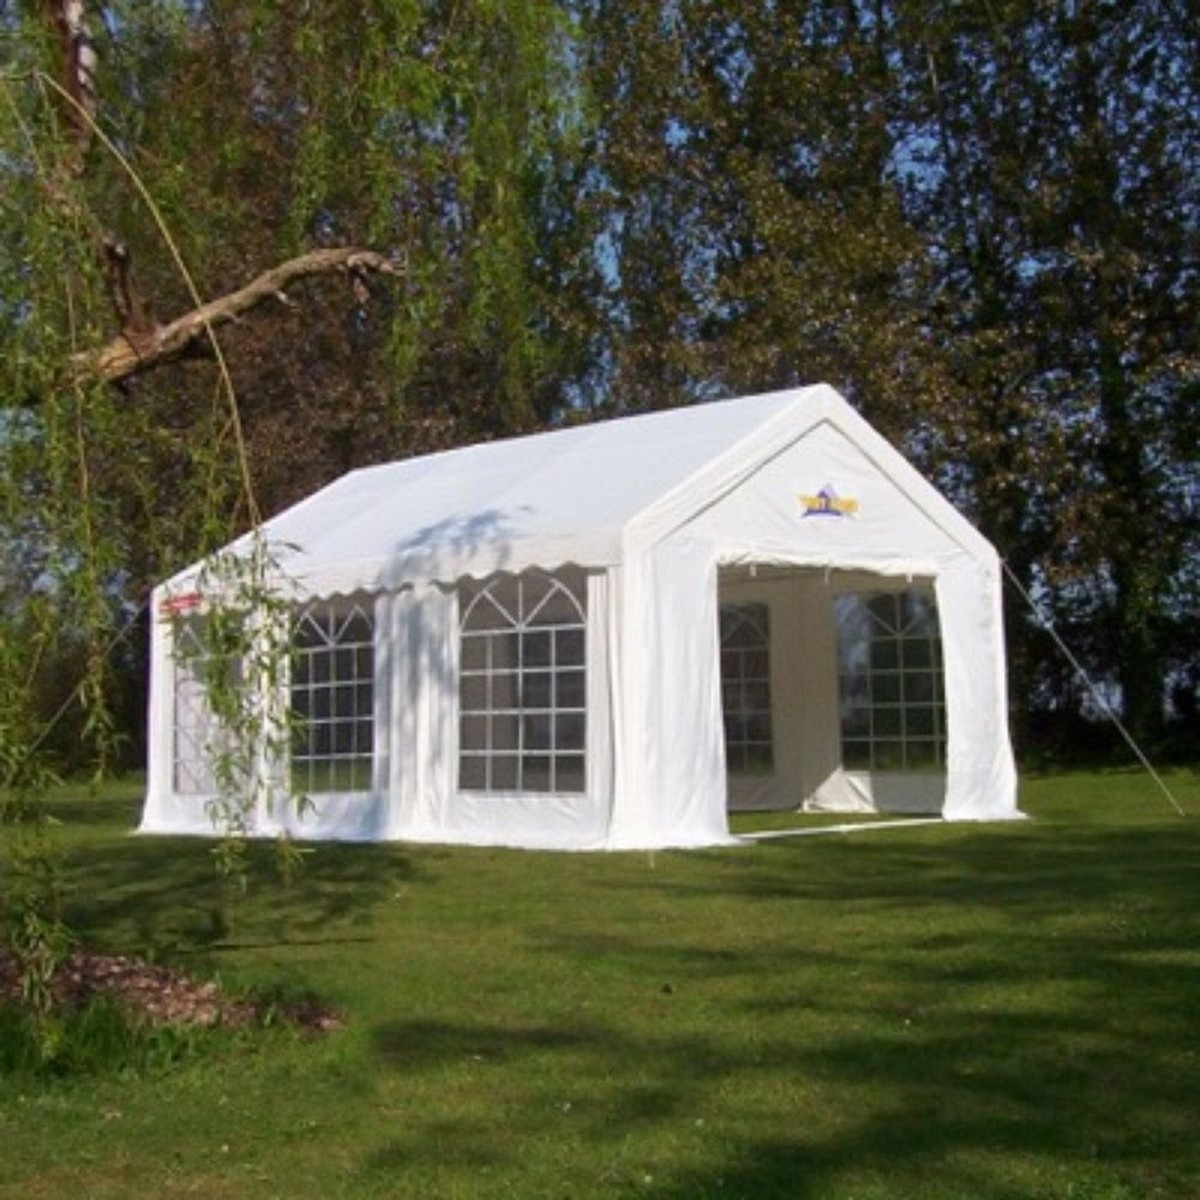 Quality gala tent & Curlew - SecondHand Marquees | Framed marquees 0 - 6m width ...